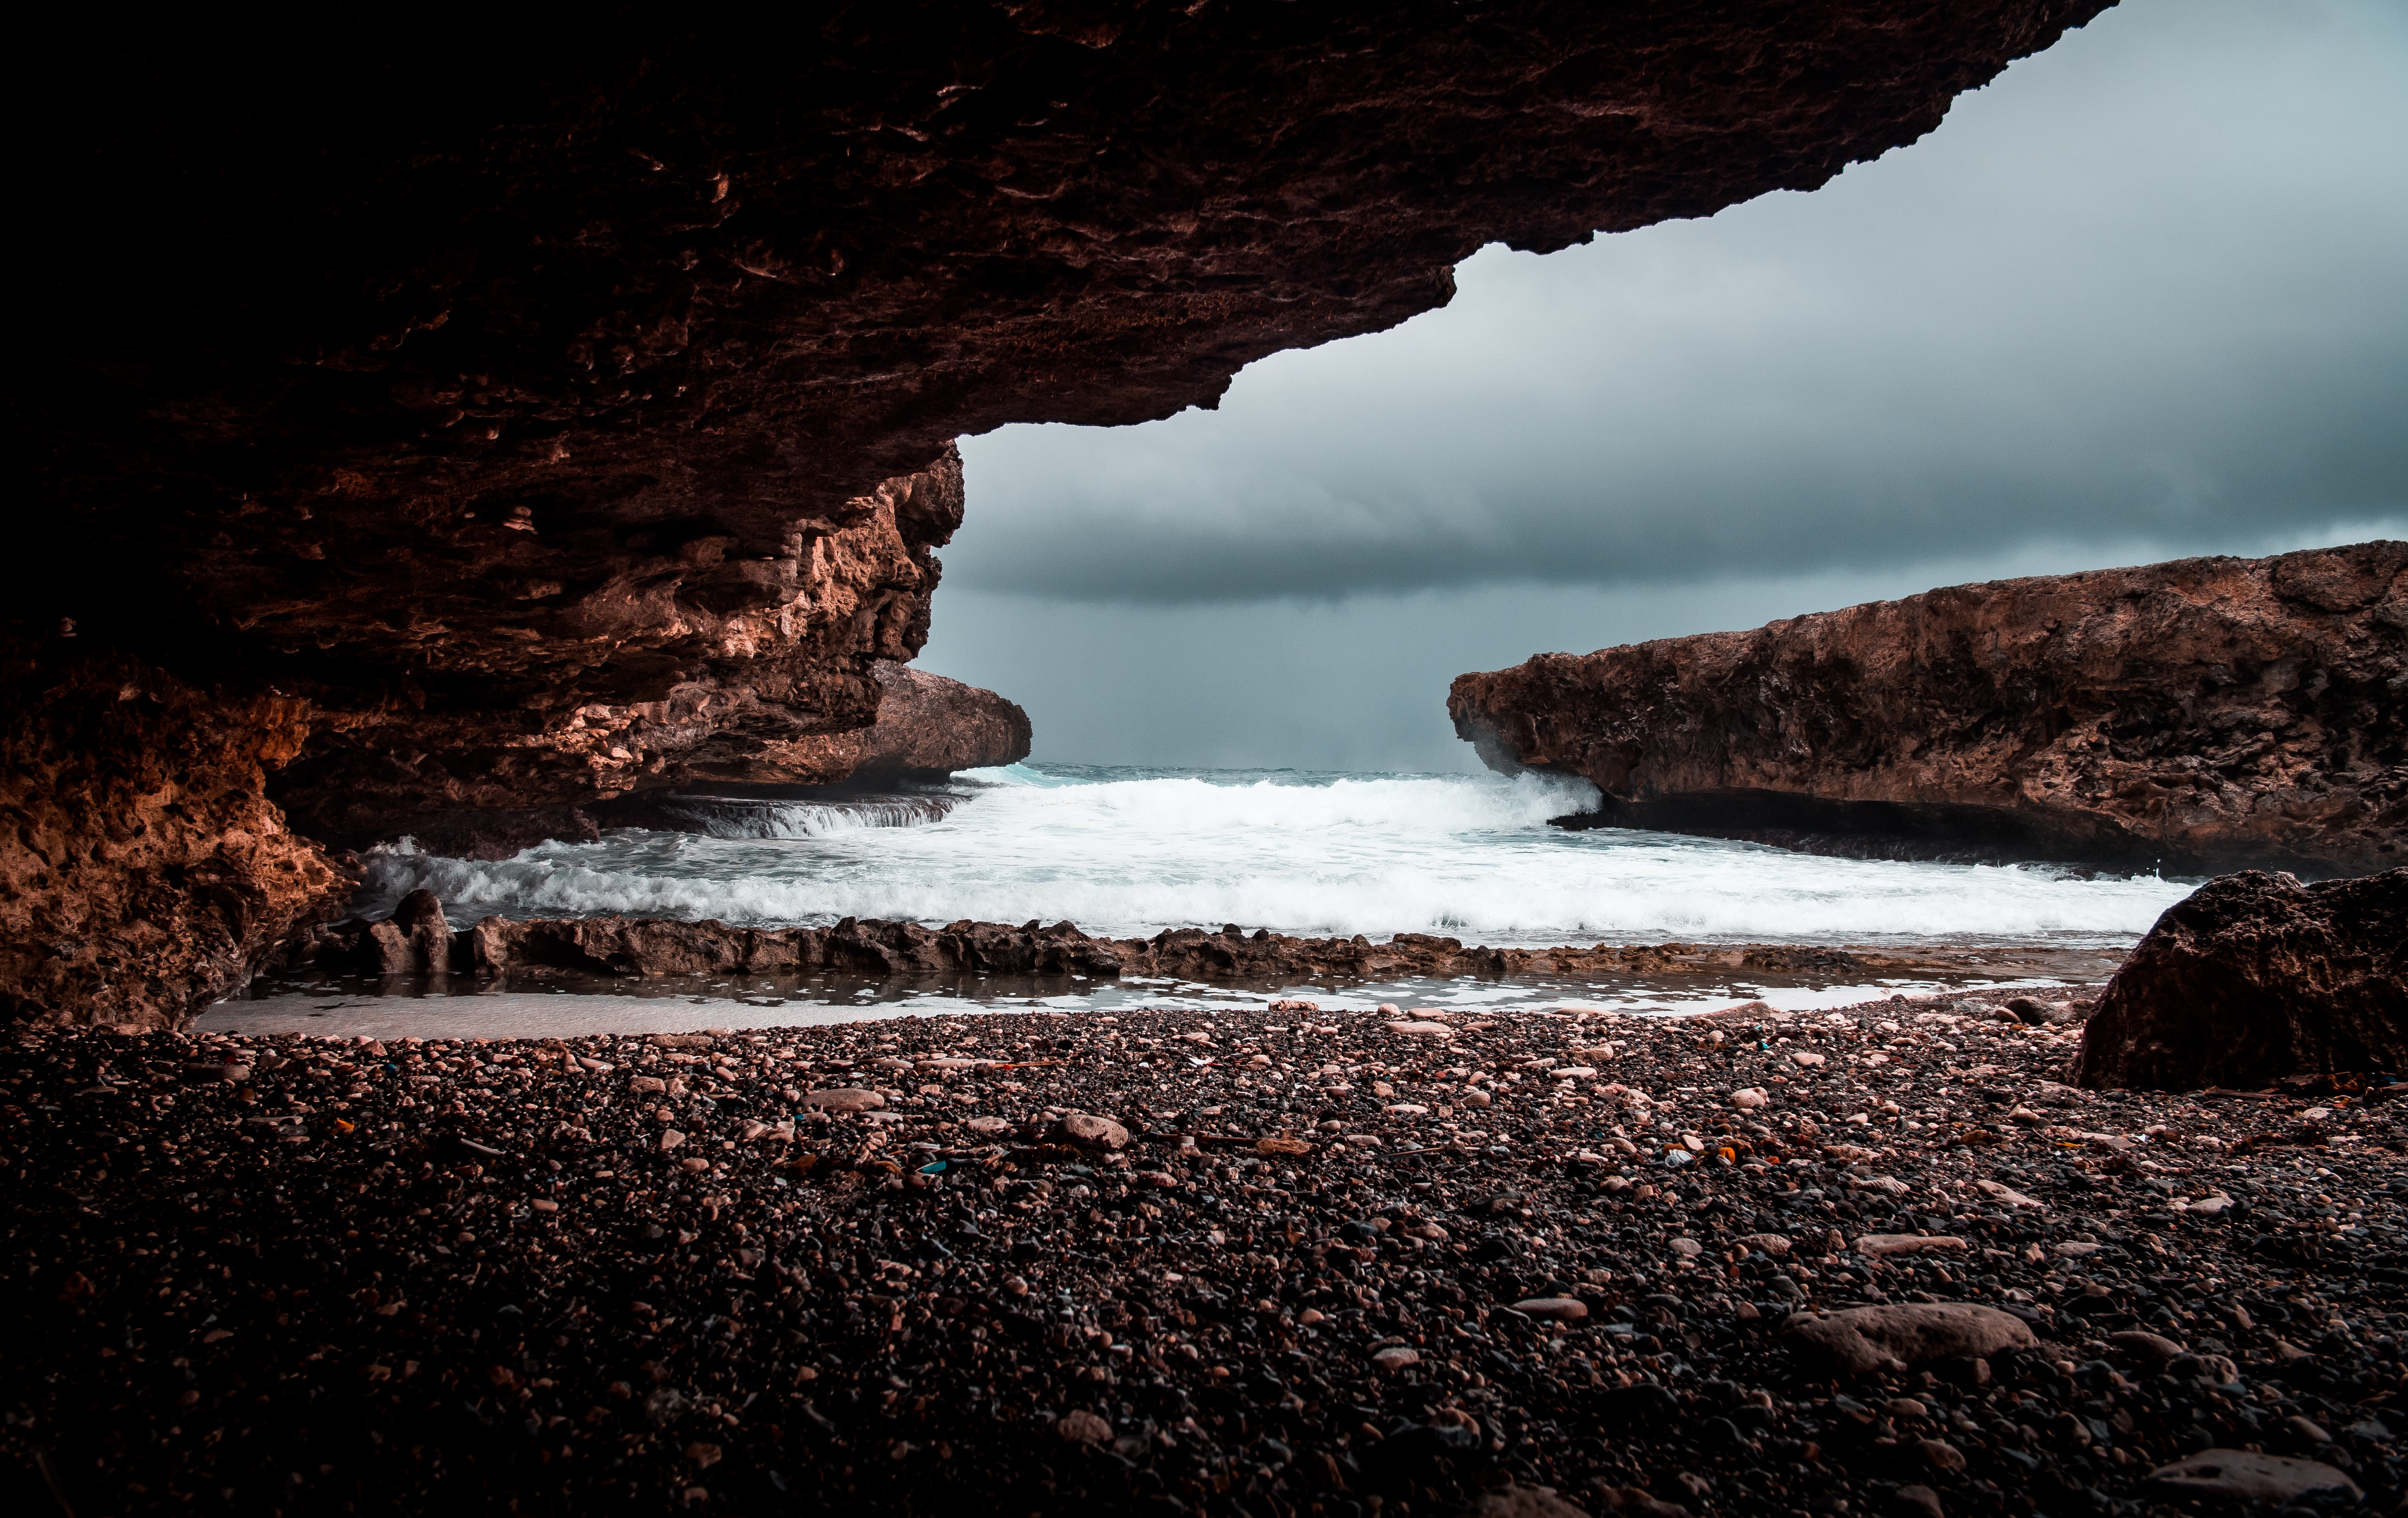 shore under rock formation during cloudy day